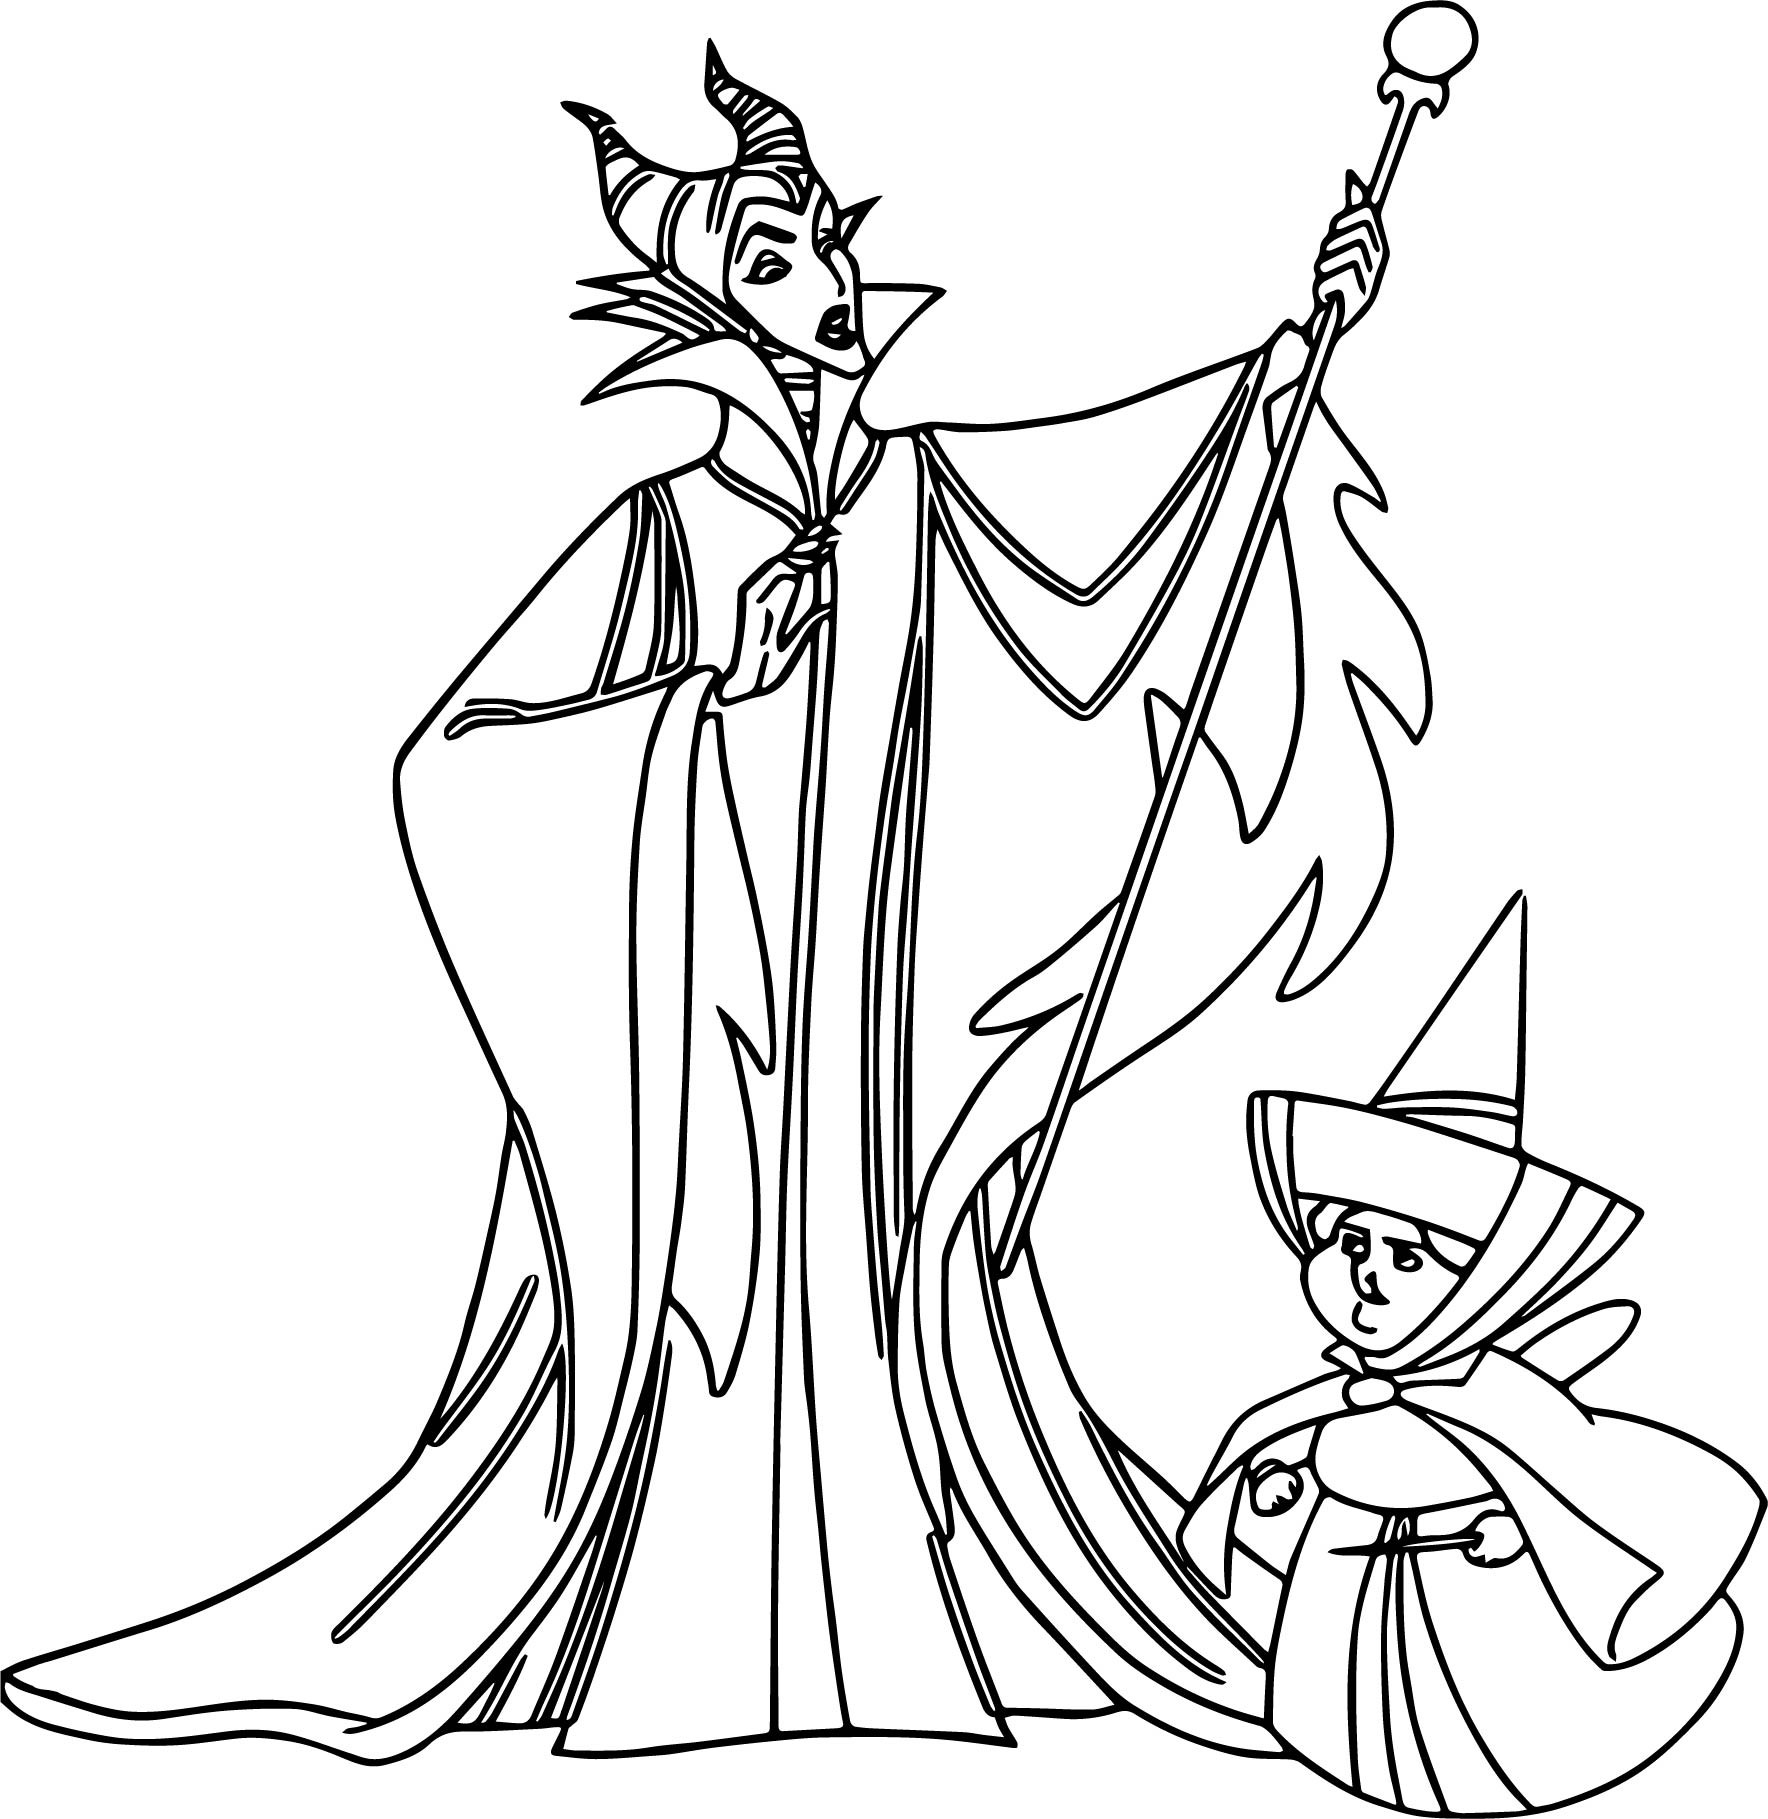 1768x1819 Maleficent Dragon Castle Cartoon Coloring Page Wecoloringpage Fine